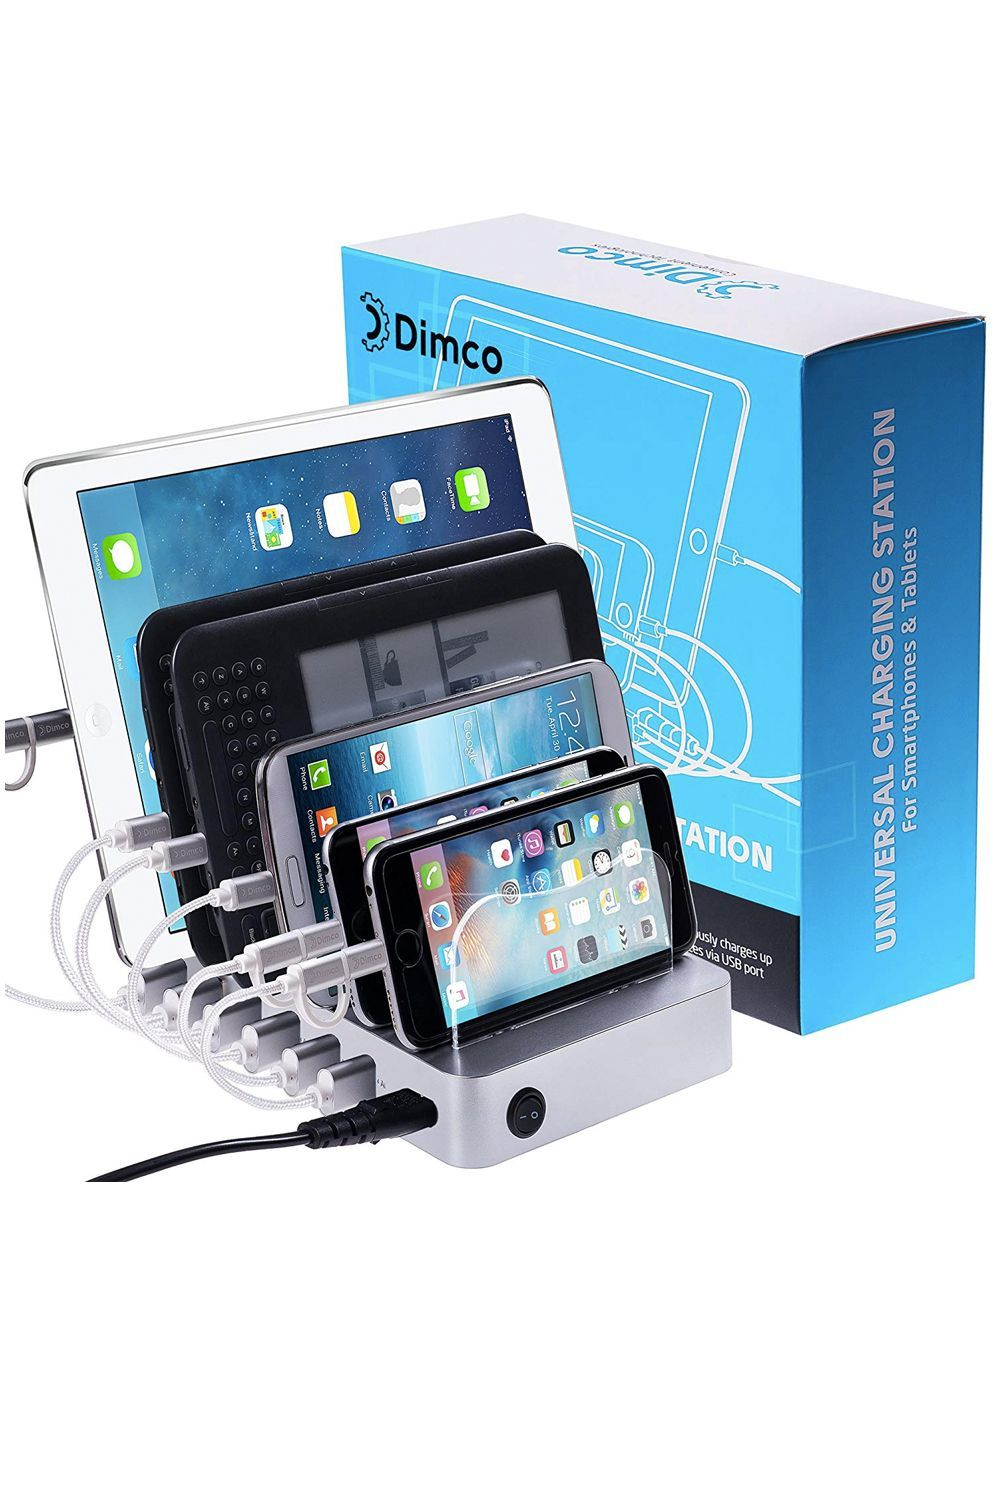 20 Top Tech Gift 2018 Best Ideas For Cool Technology Gifts If Youre Looking An Electronics Project With A Bit Of Holiday